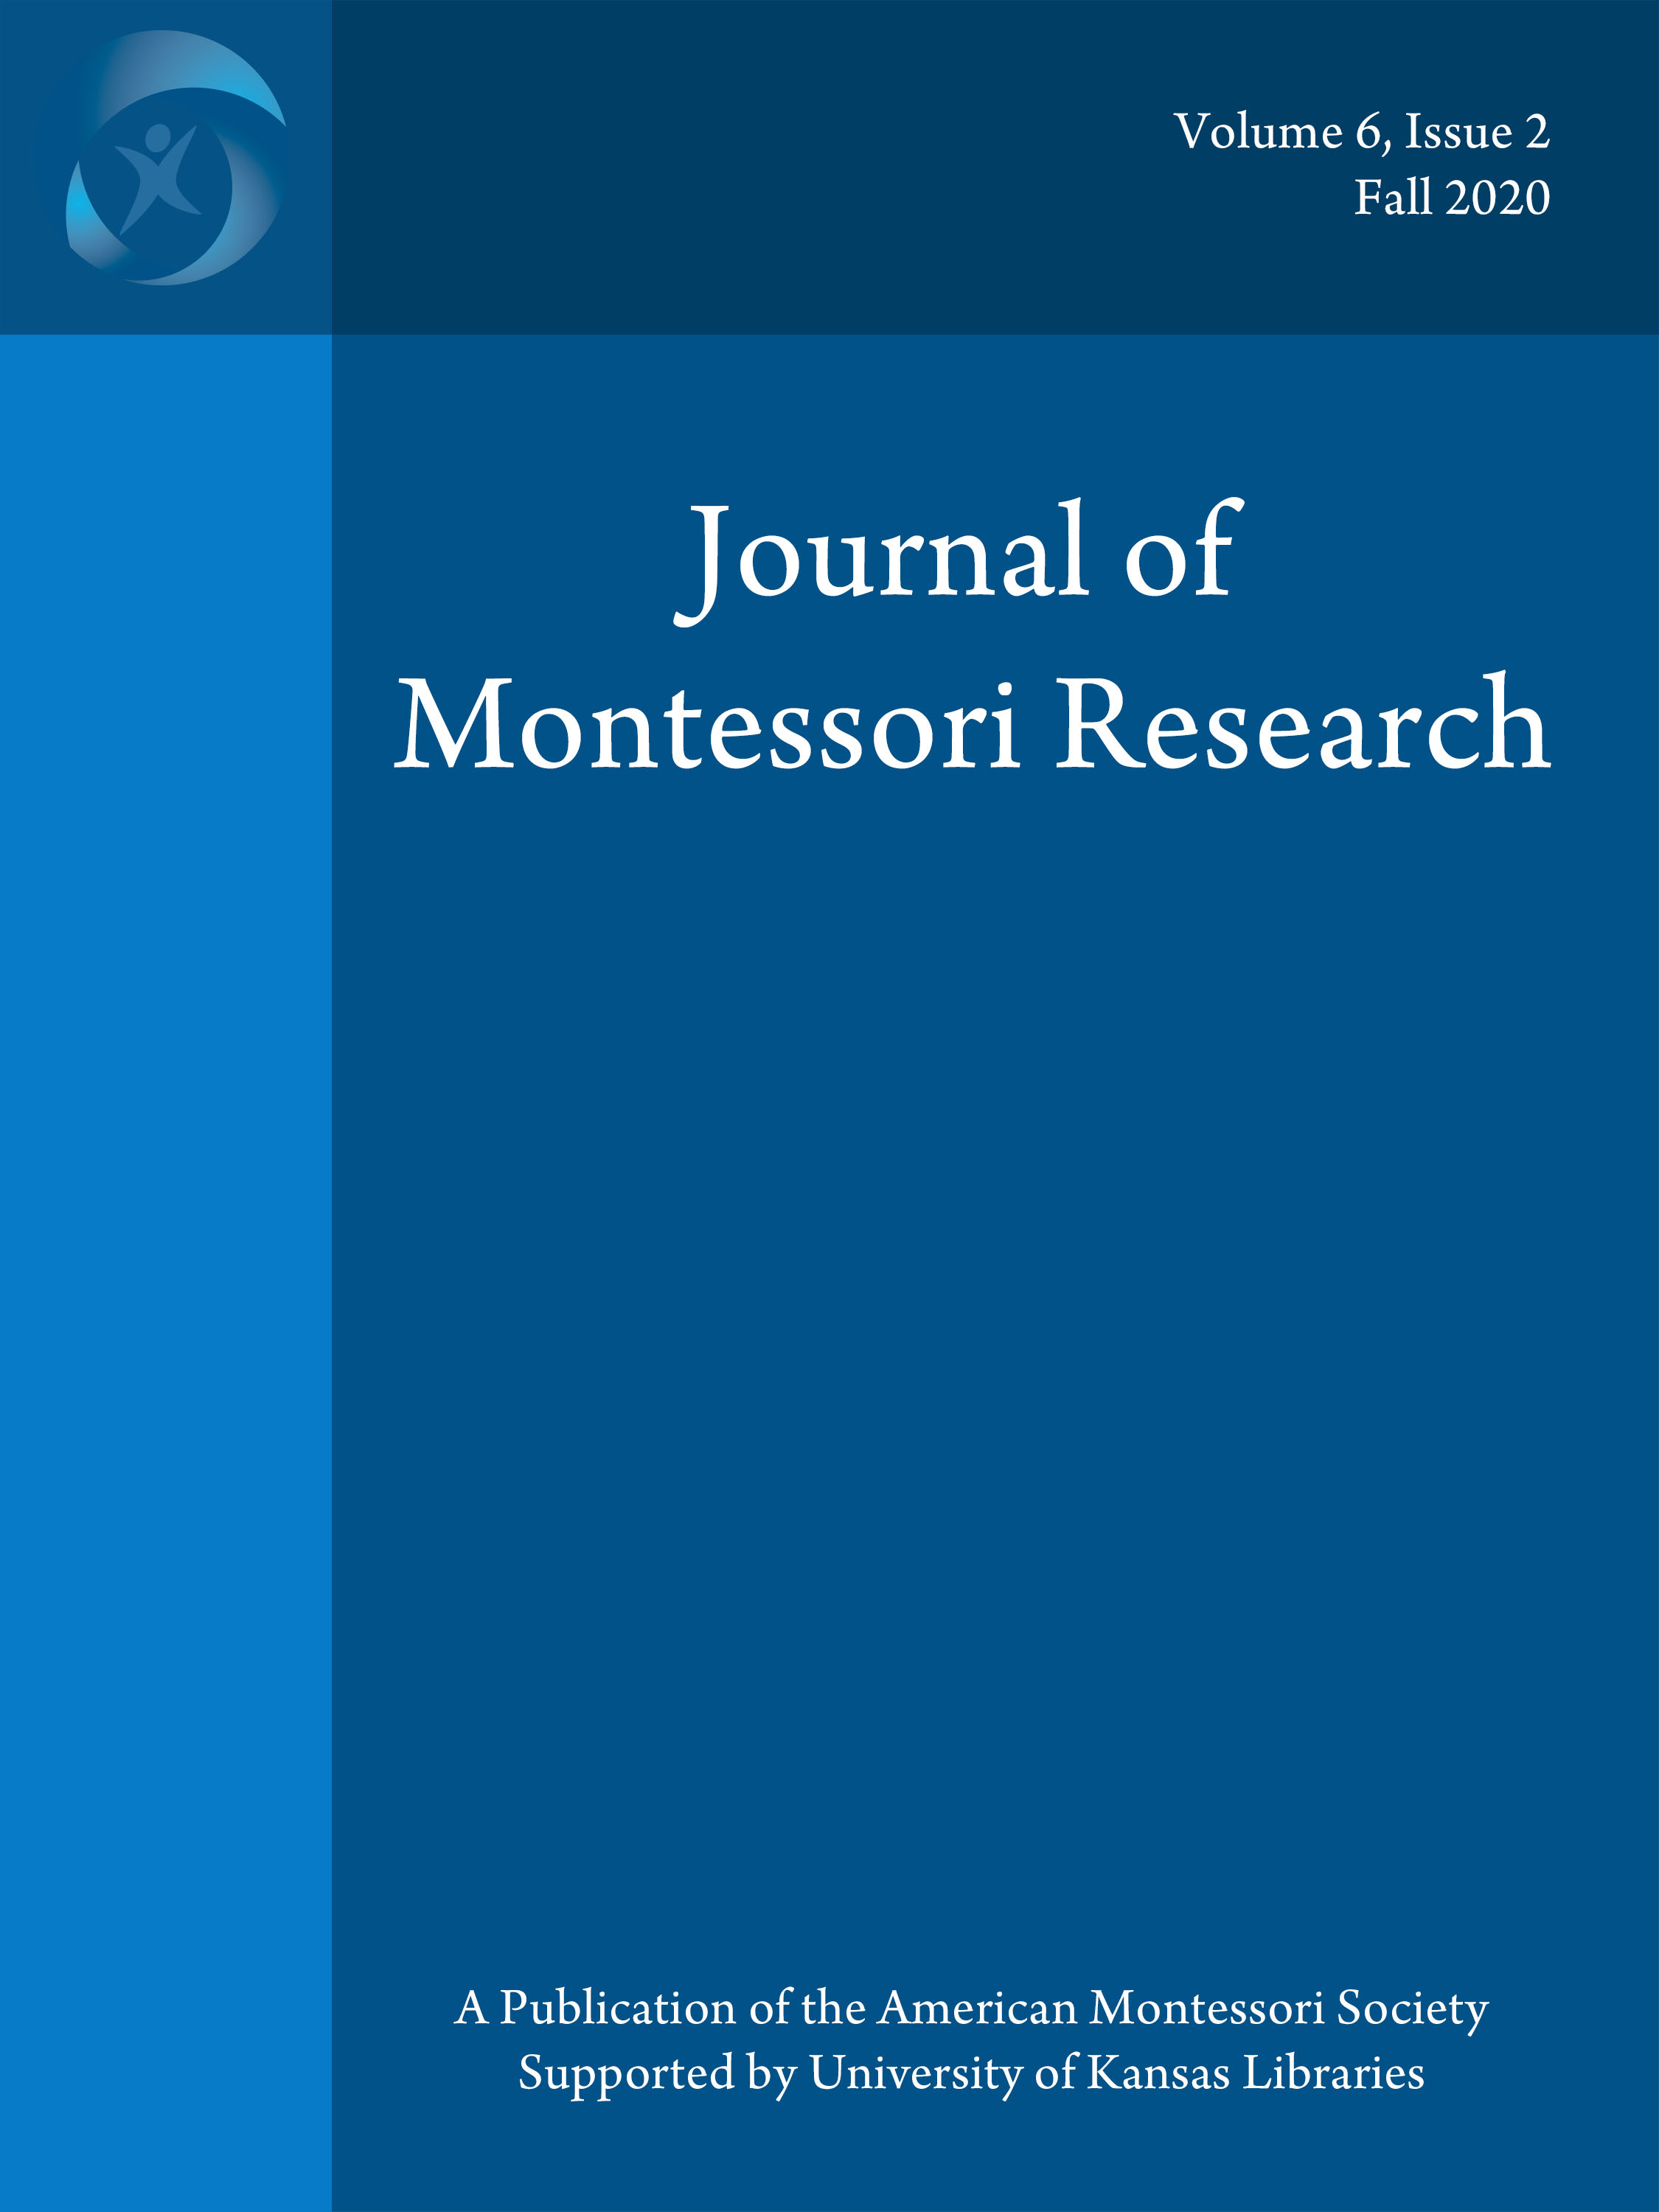 View Vol. 6 No. 2 (2020): Journal of Montessori Research